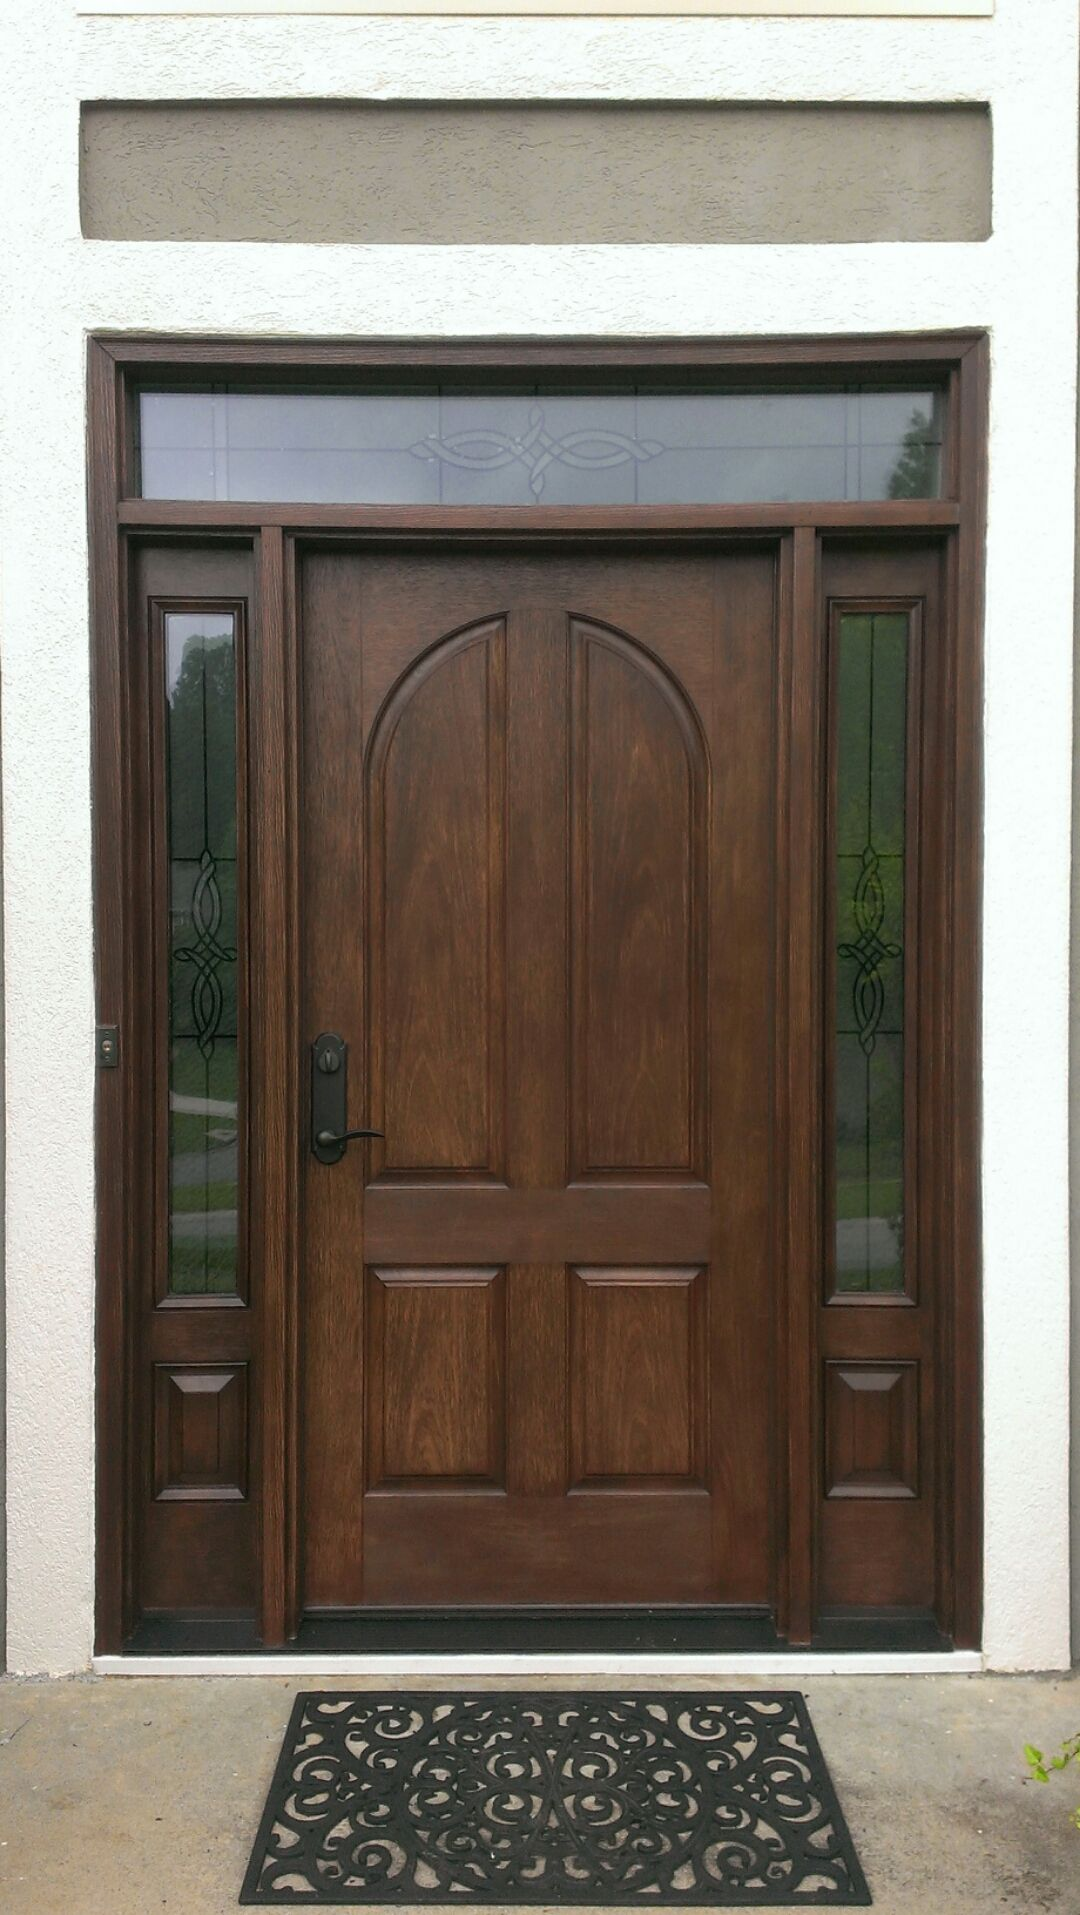 New therma tru classic craft door with longford glass for Therma tru entry doors